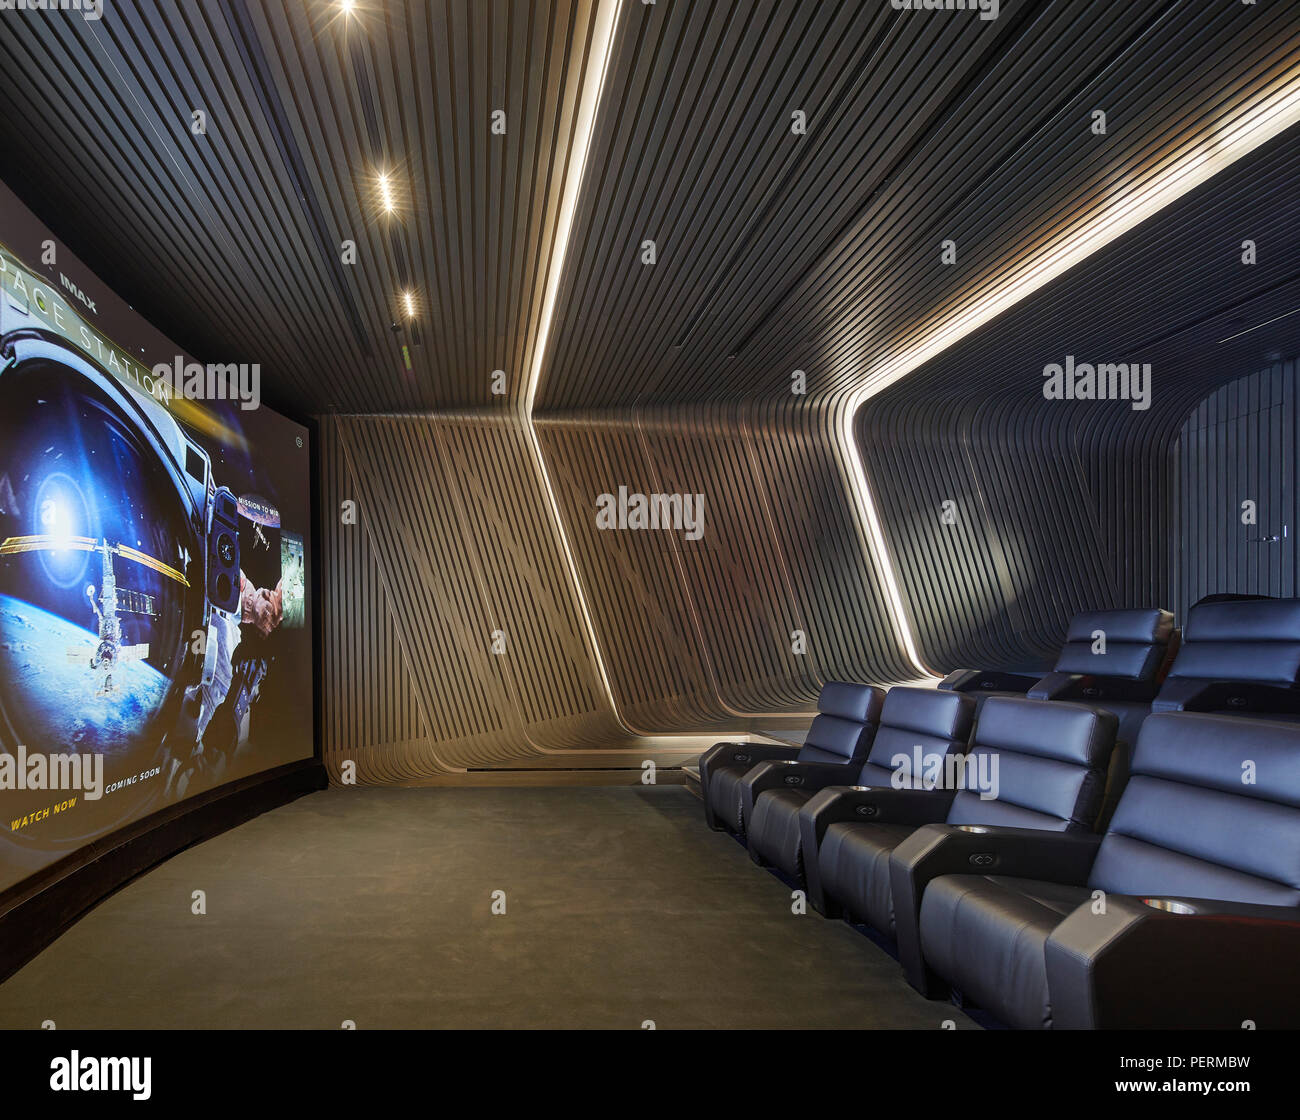 Architecte D'intérieur New York Interior View Of Cinema Room 520 West 28th Street New York City